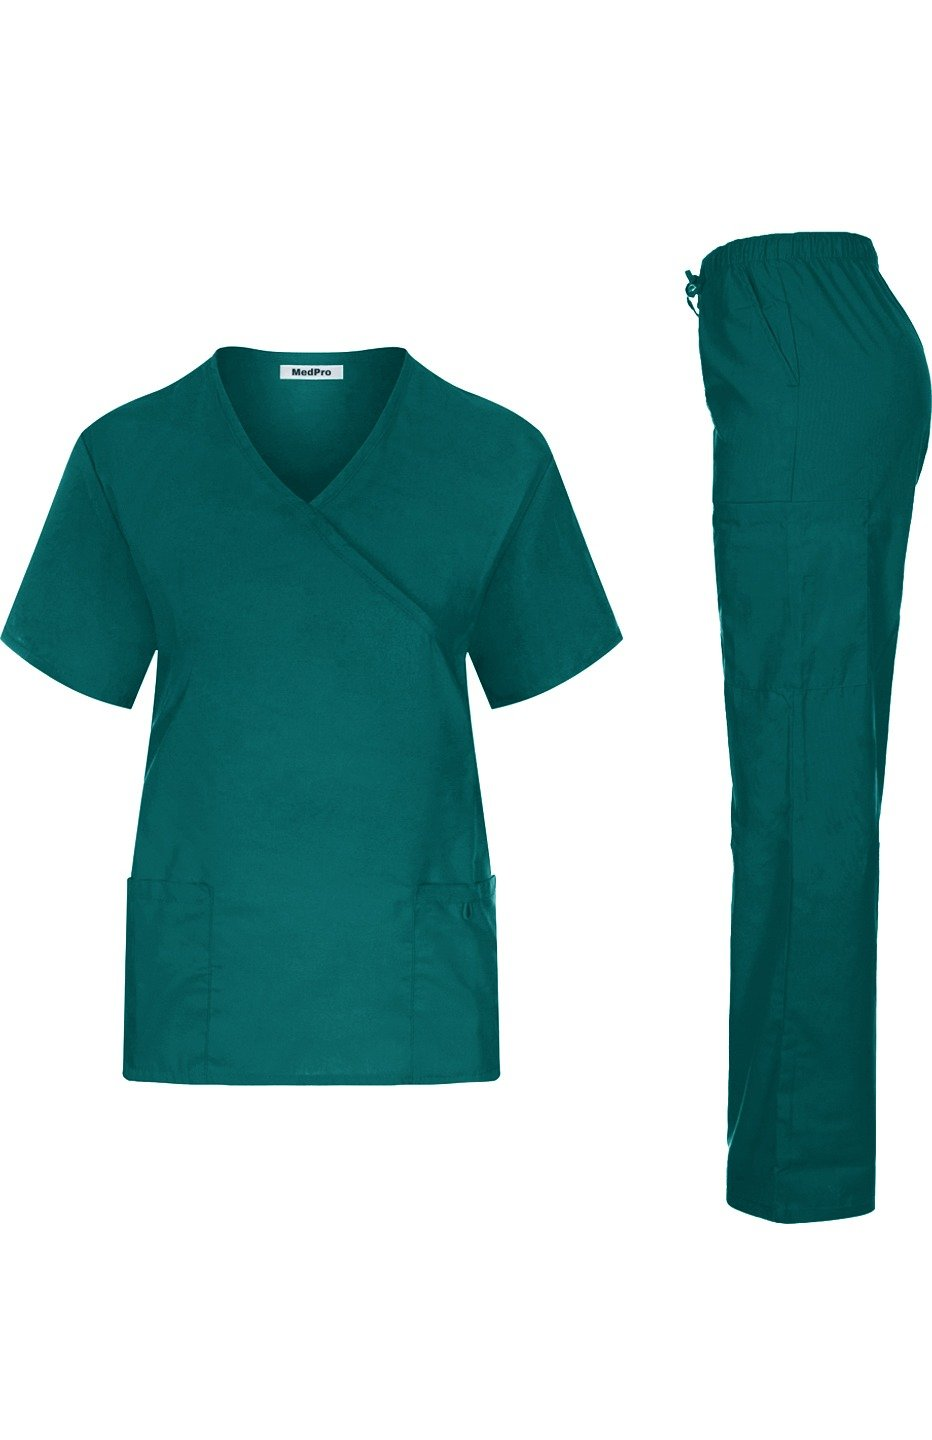 MedPro Women's Solid Medical Scrub Set Mock Wrap Top and Cargo Pants Hunter Green XL (GT-755)